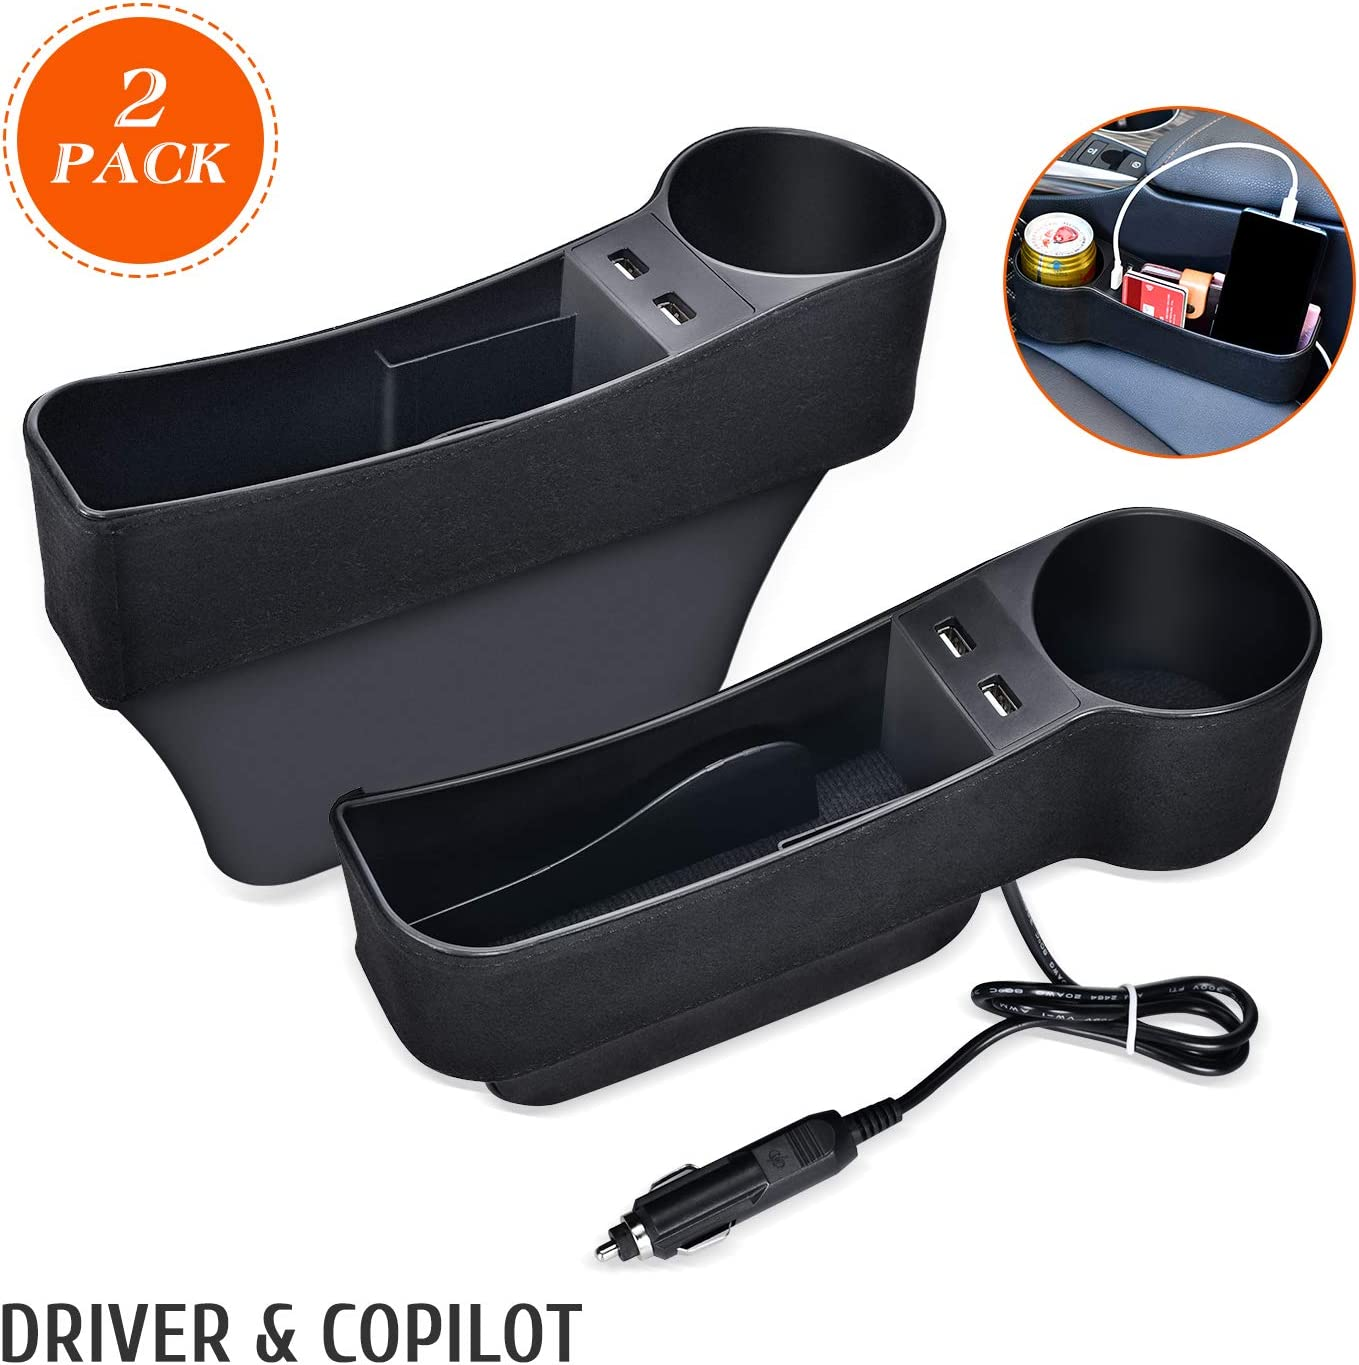 2Pack,Black STEPIN Car Seat Gap Filler Multifunctional Car Seat Organizer with Cup Holder,Between Seat Car Organizer Not Fit Central Console Lower Than The Seat